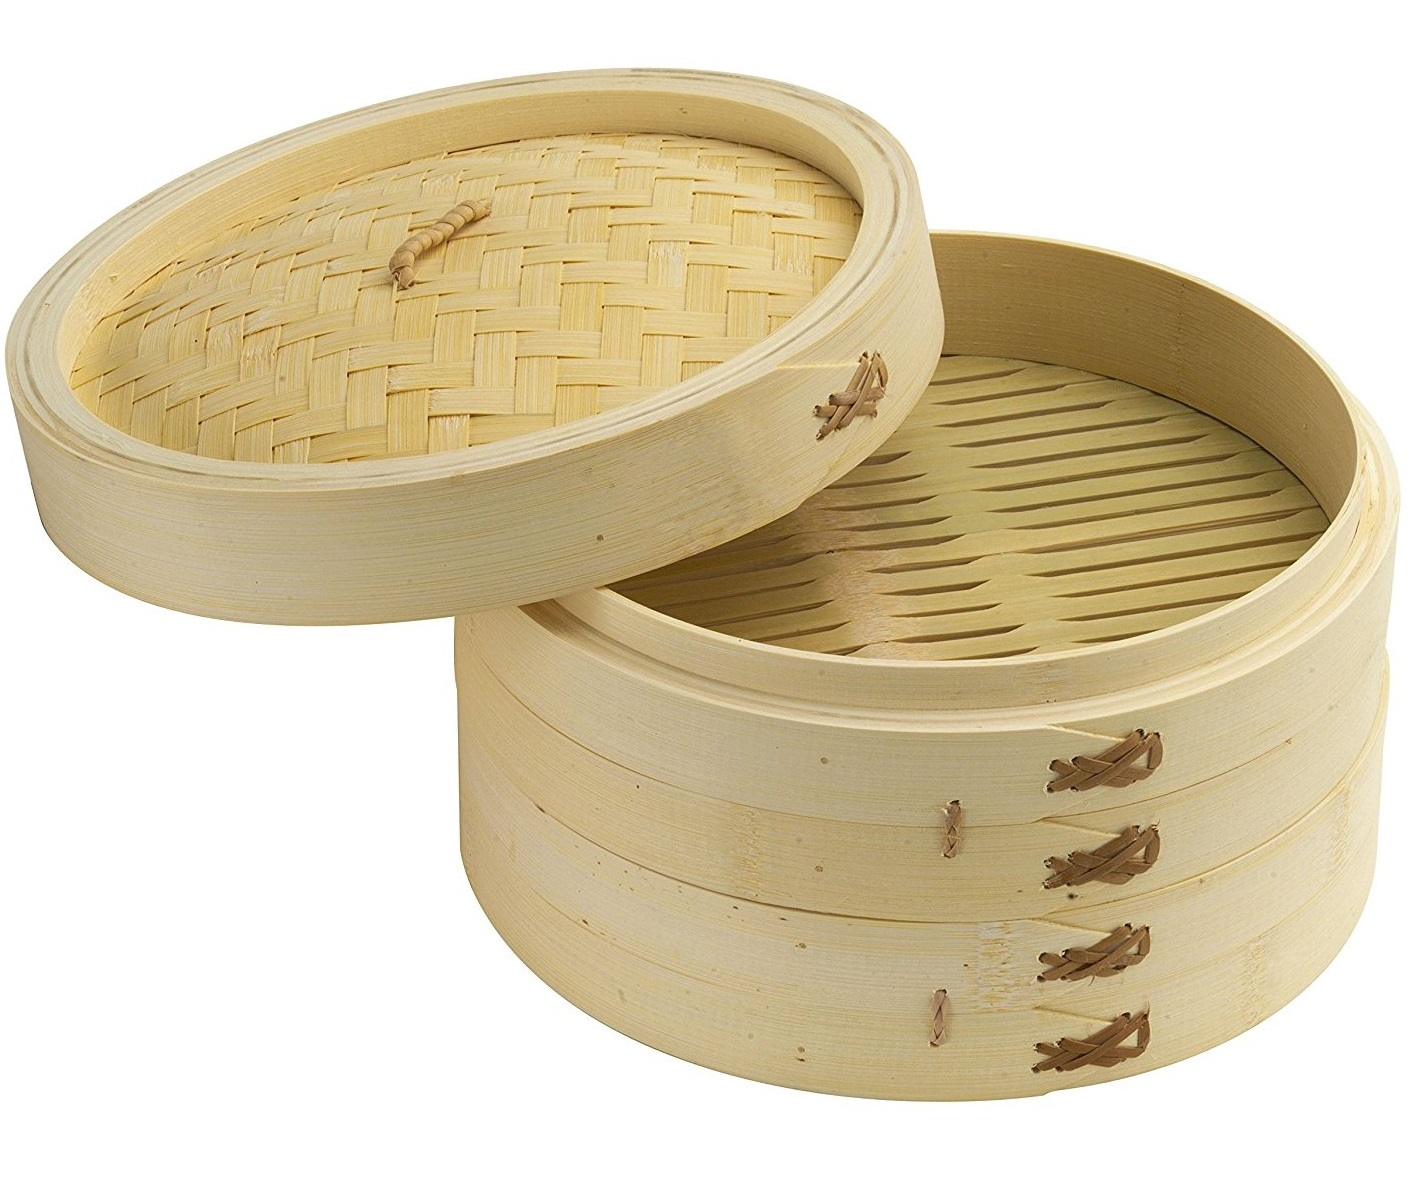 Joyce Chen 10 Inch Bamboo Steamer Set – Available in 2 Quantity Options